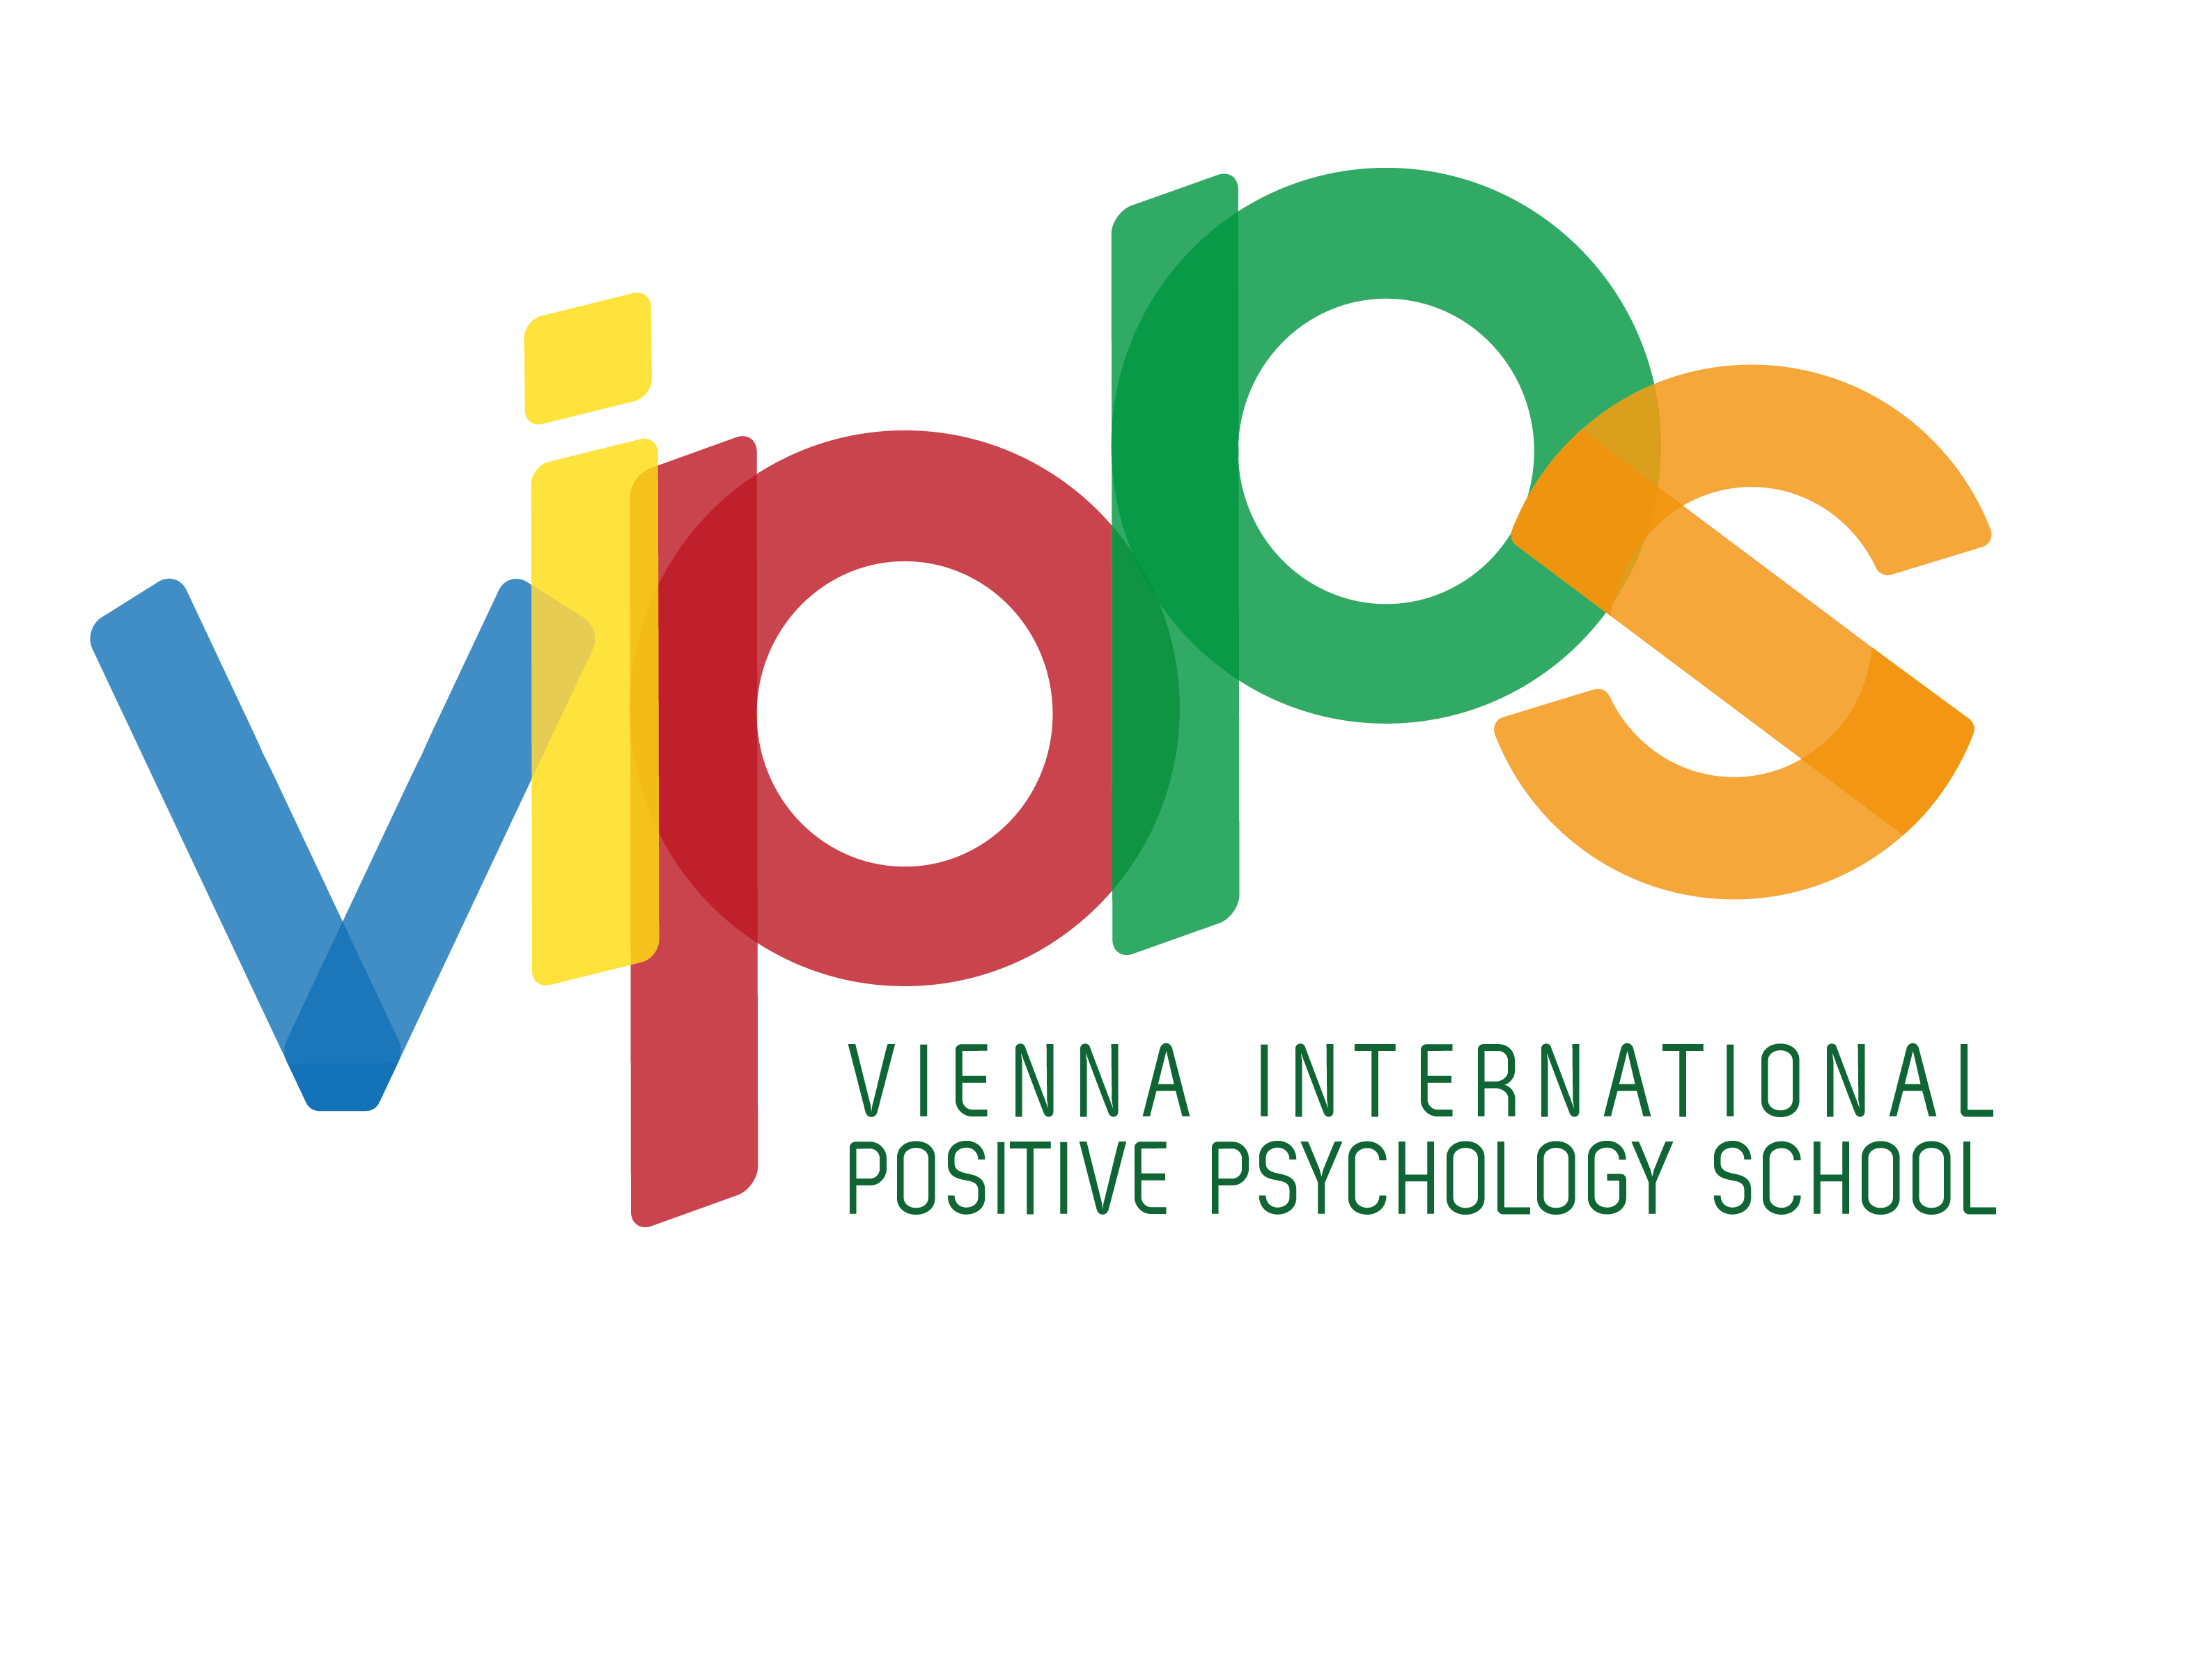 Vienna International Positive Psychology School